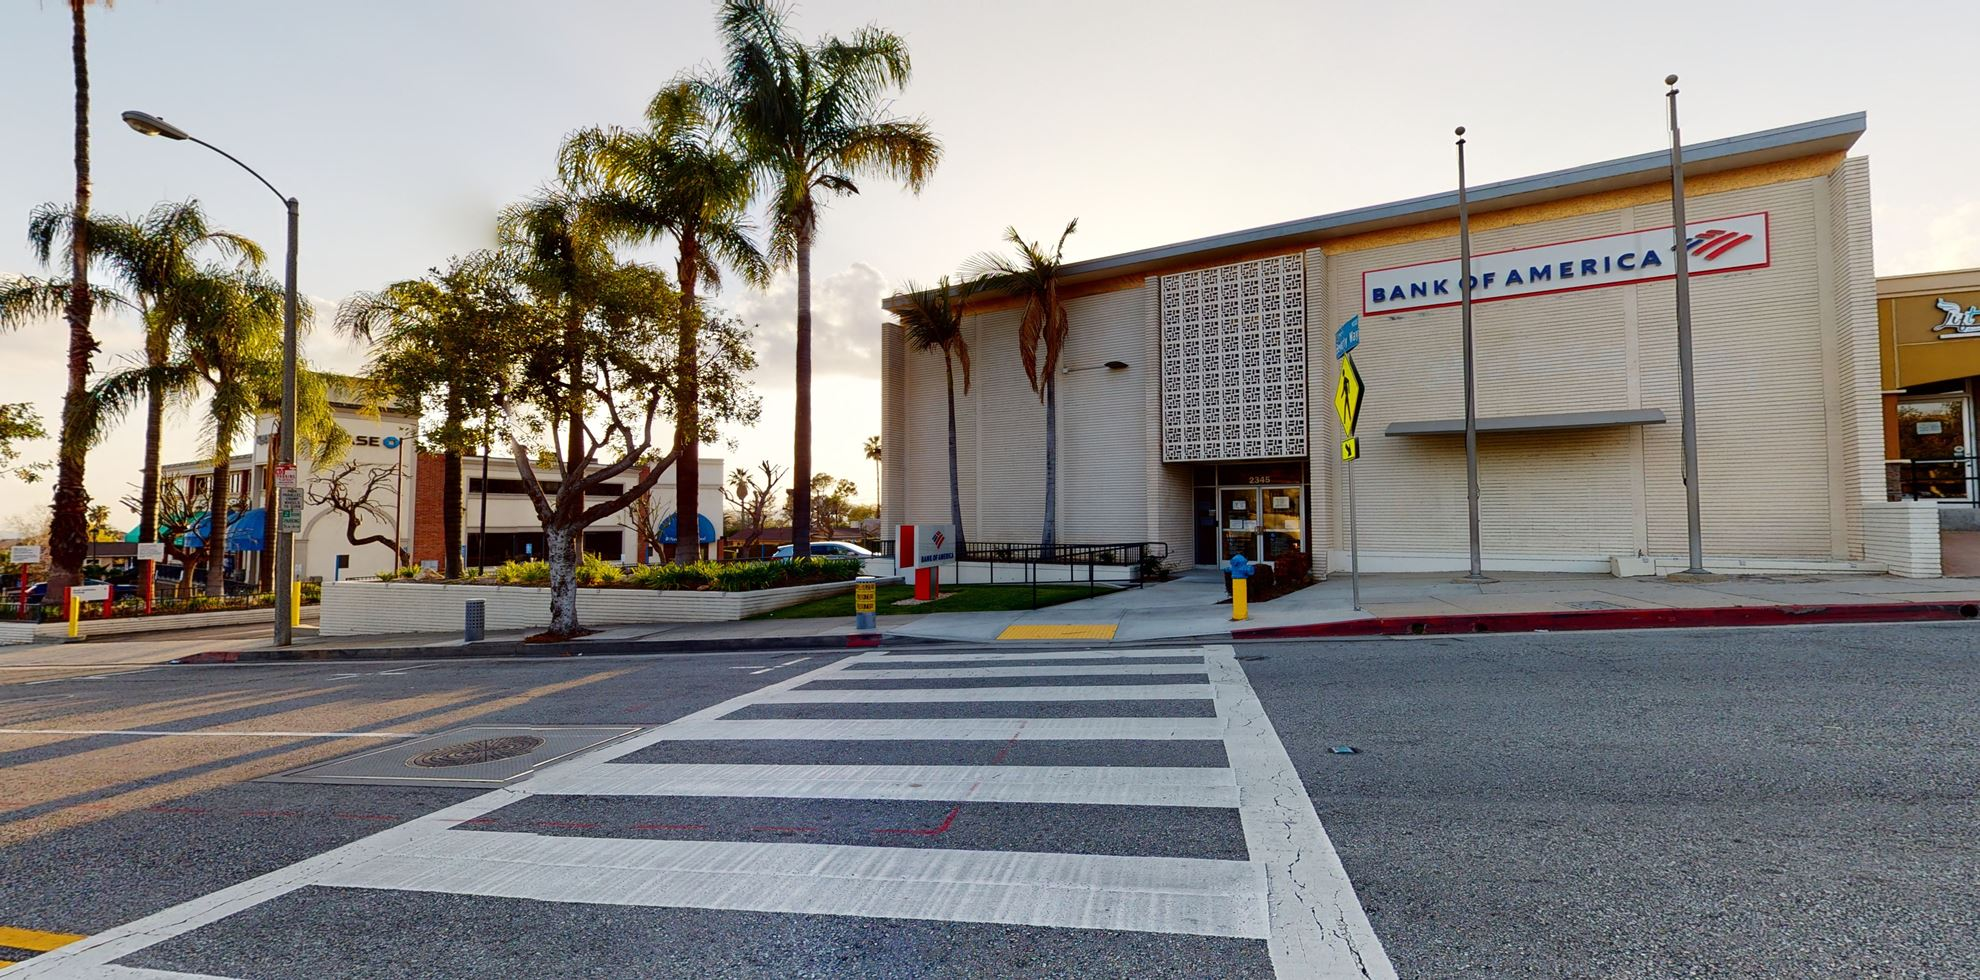 Bank of America financial center with walk-up ATM   2345 Lake Ave, Altadena, CA 91001